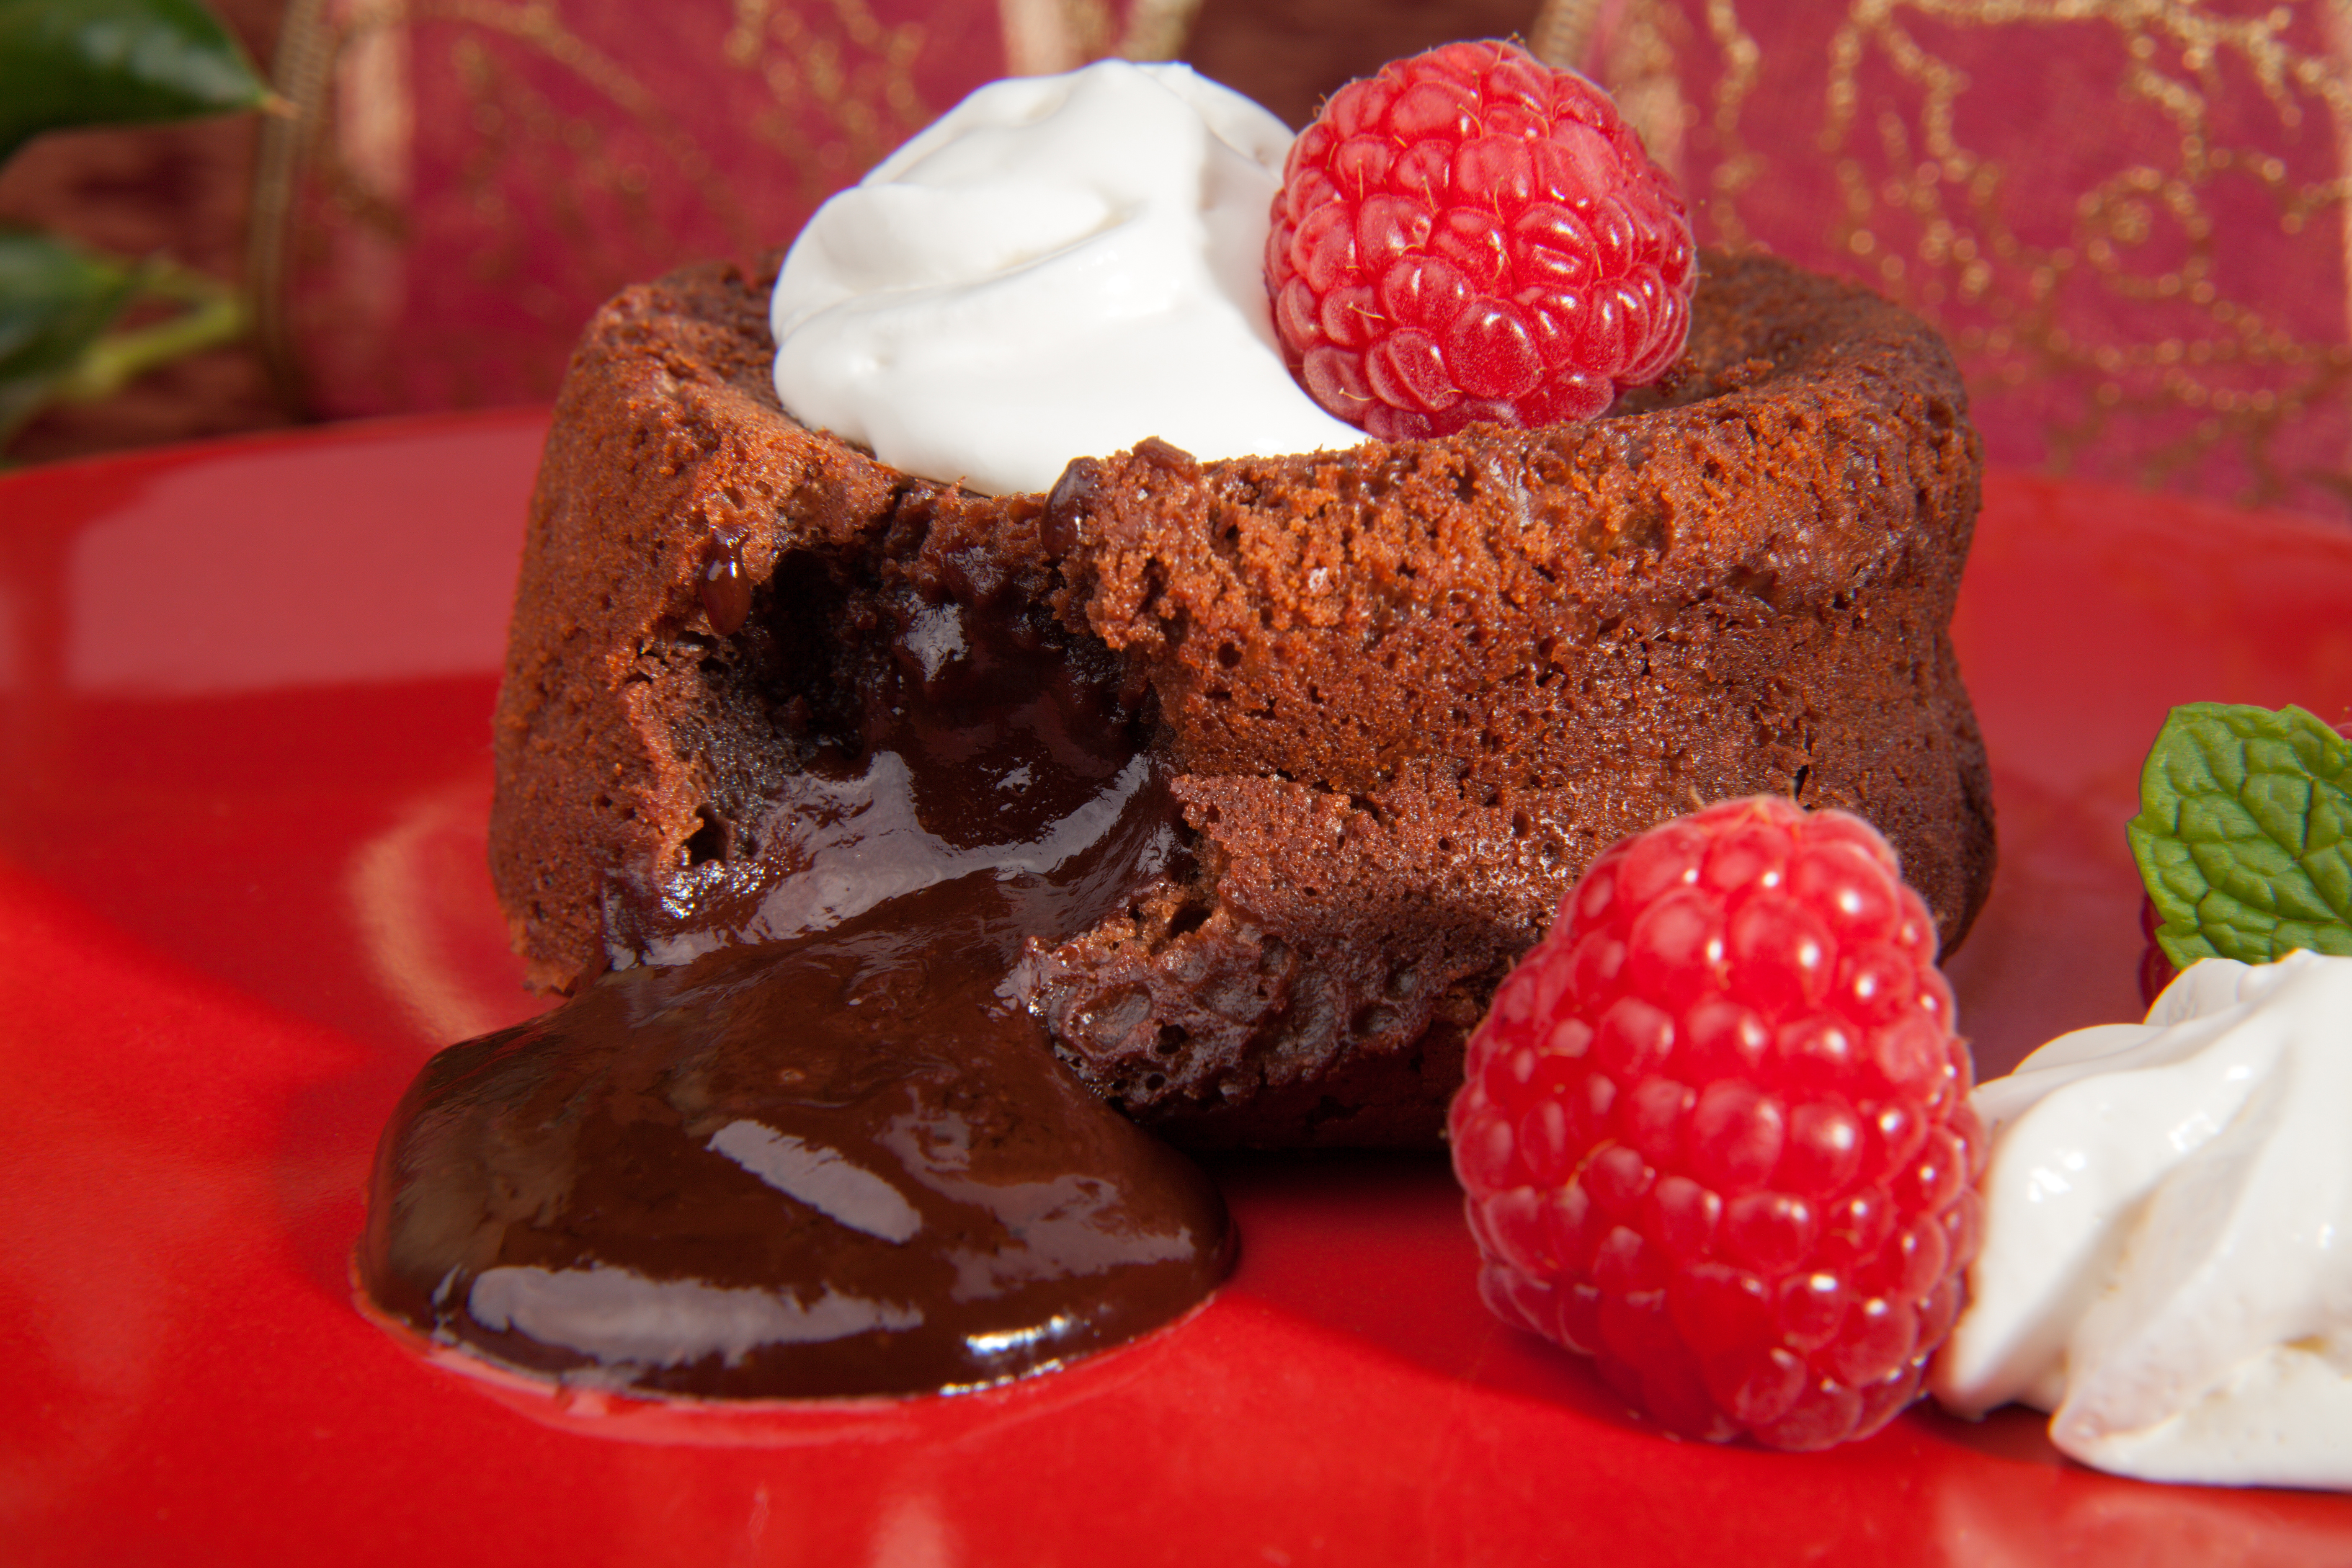 Delicious dark chocolate lava cake dessert served with whipped cream and fresh raspberries. Surrounded by Christmas ornaments.